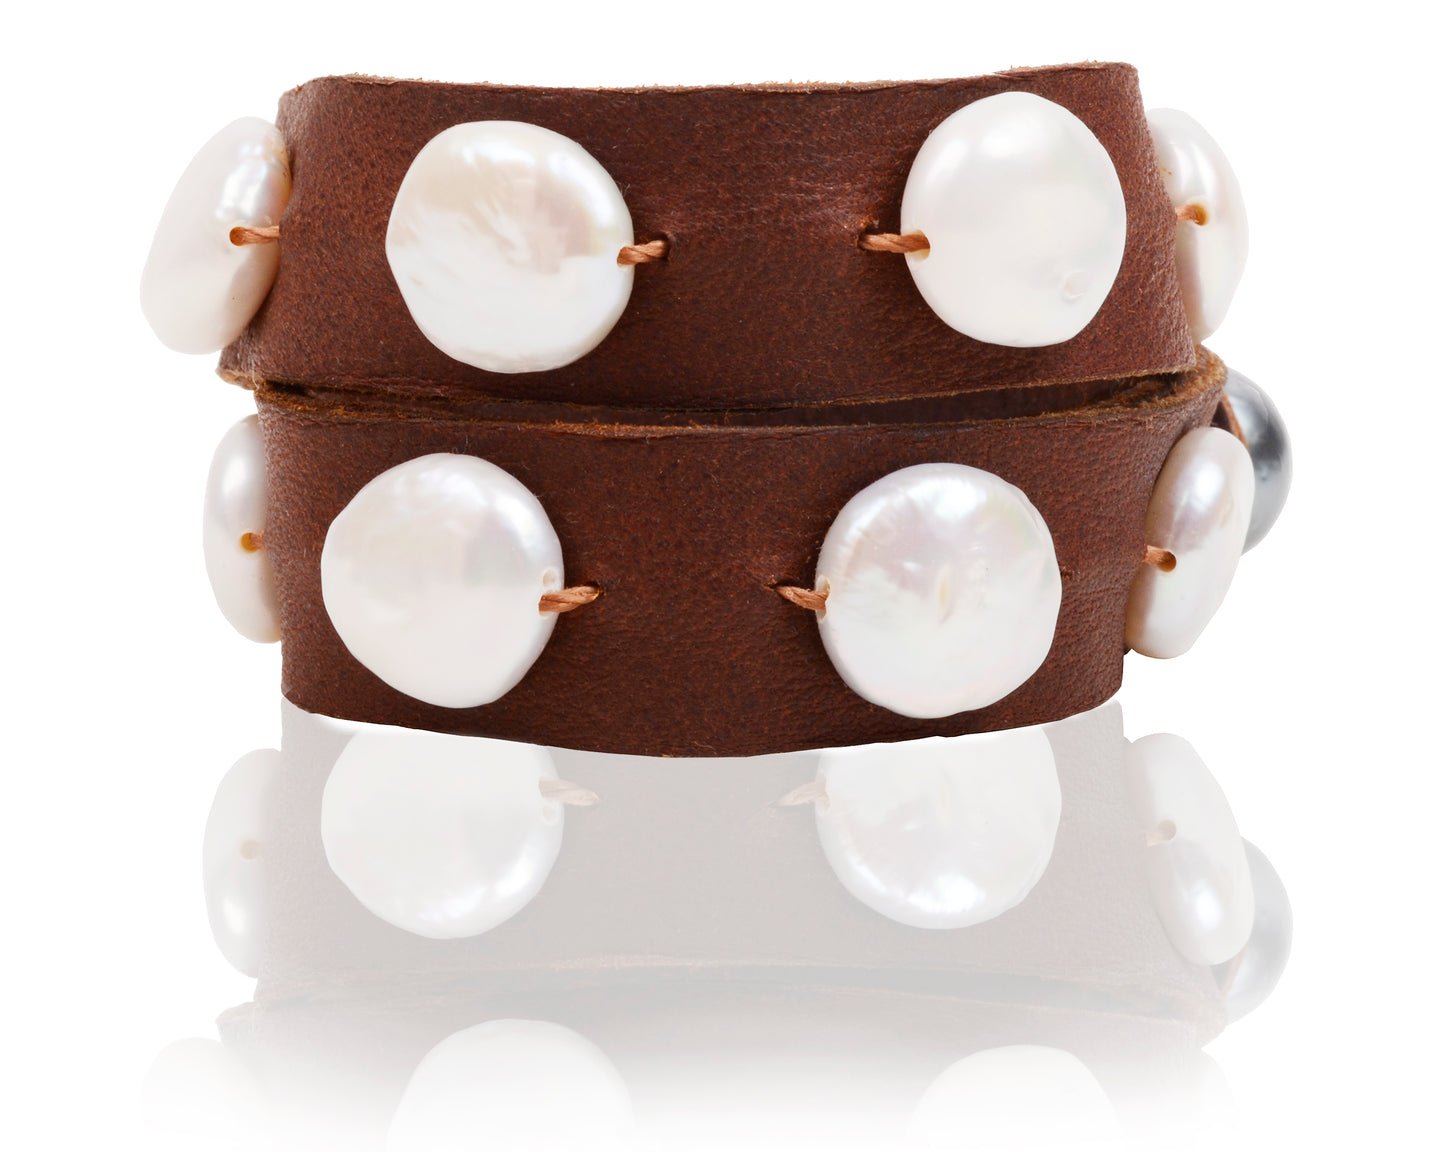 Cown Pearl Brown Leather Wrap bracelet or Choker Necklace handmade by Vincent Peach Fine Jewelry